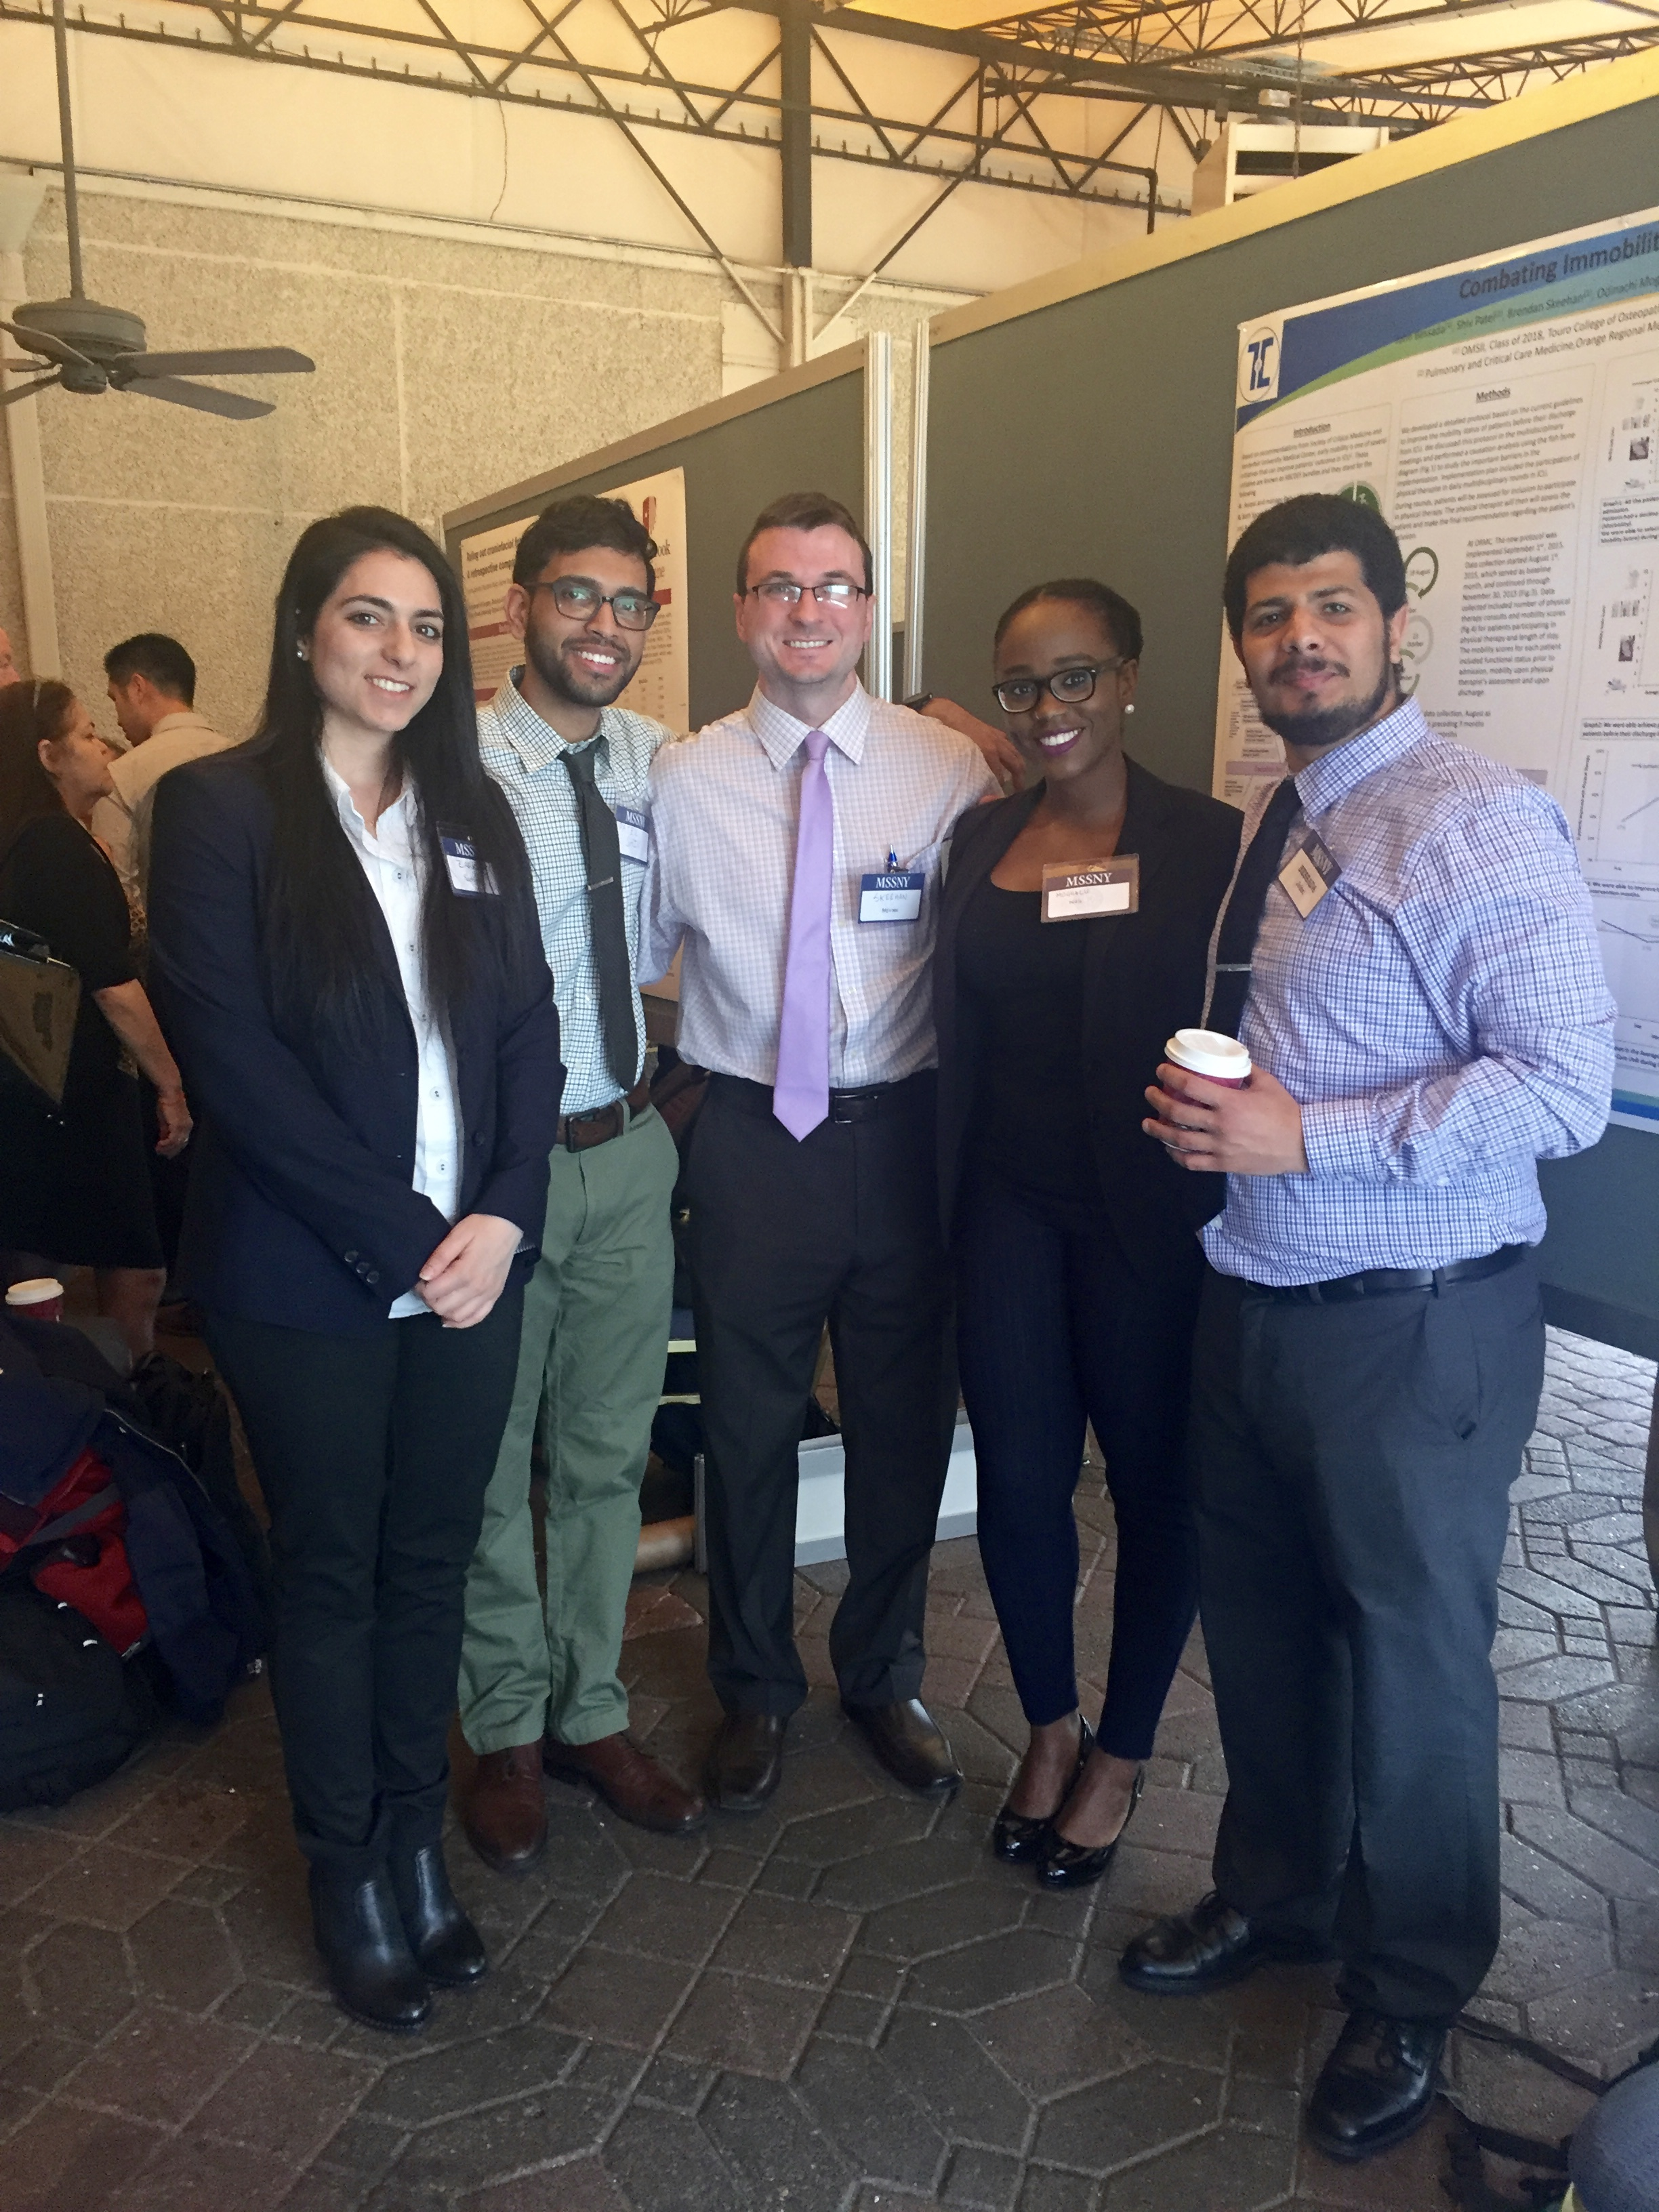 TouroCOM students will be presenting at the prestigious CHEST Conference this year. From left to right: TouroCOM students Satin Zakar, Shiv Patel, Brendan Skeehan, Oddie Moghalu and John Bessada.